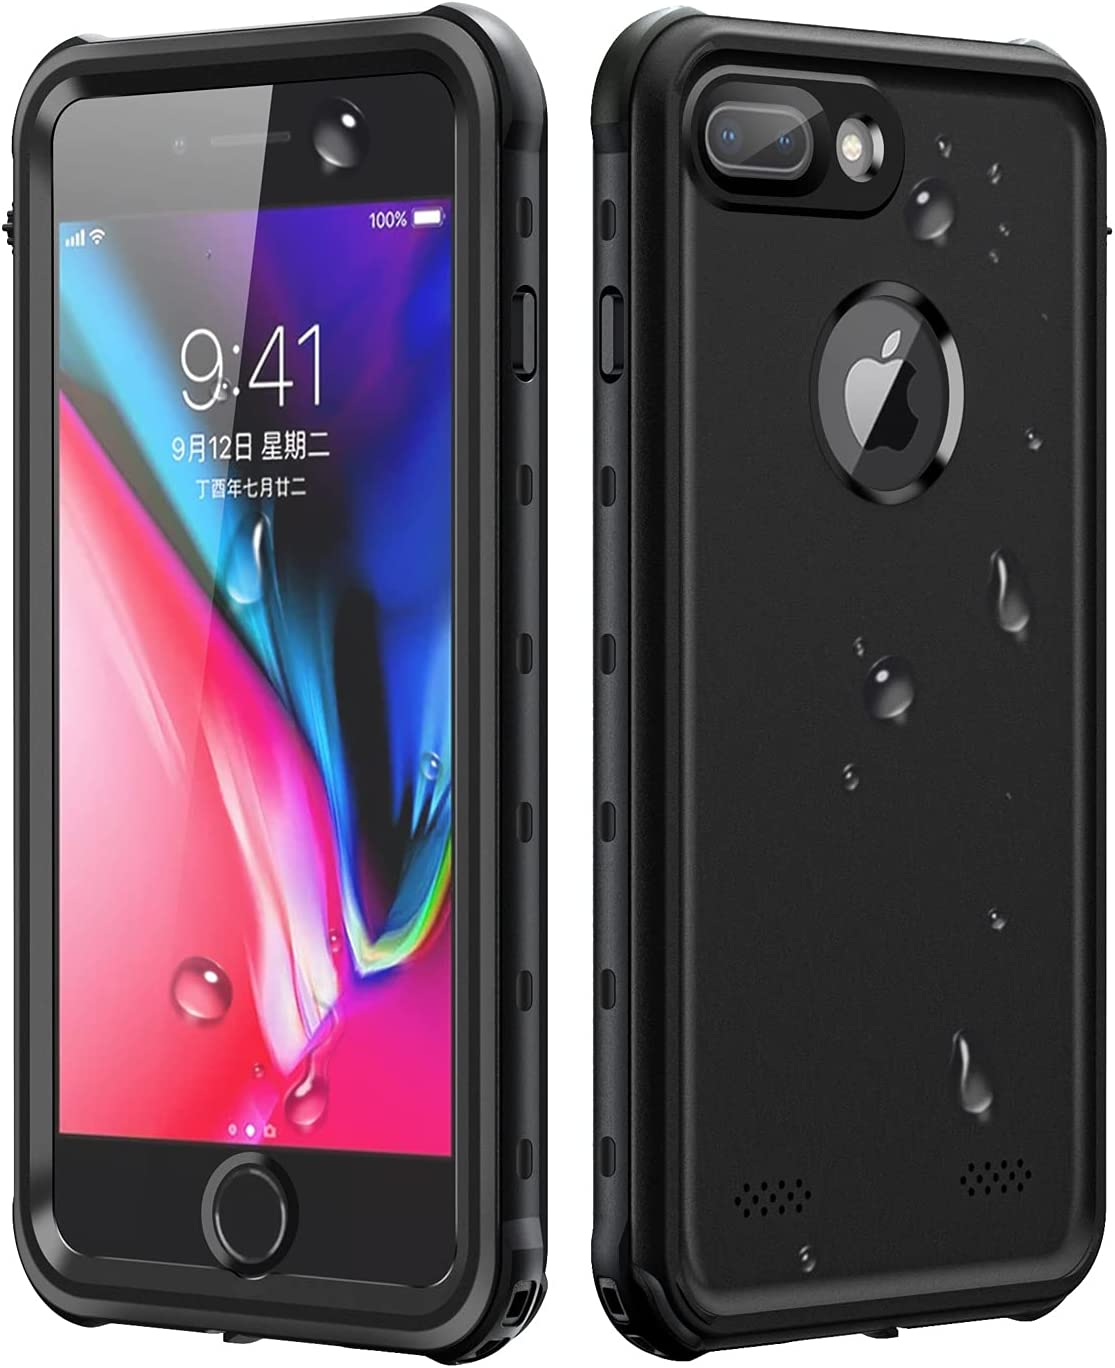 Lamcase for iPhone 8 Plus Waterproof Case, iPhone 7 Plus Waterproof Case, Built-in Screen Protector IP68 Underwater Sealed Full Body Protective Shockproof Snowproof Dustproof Clear Cover, Black/Clear